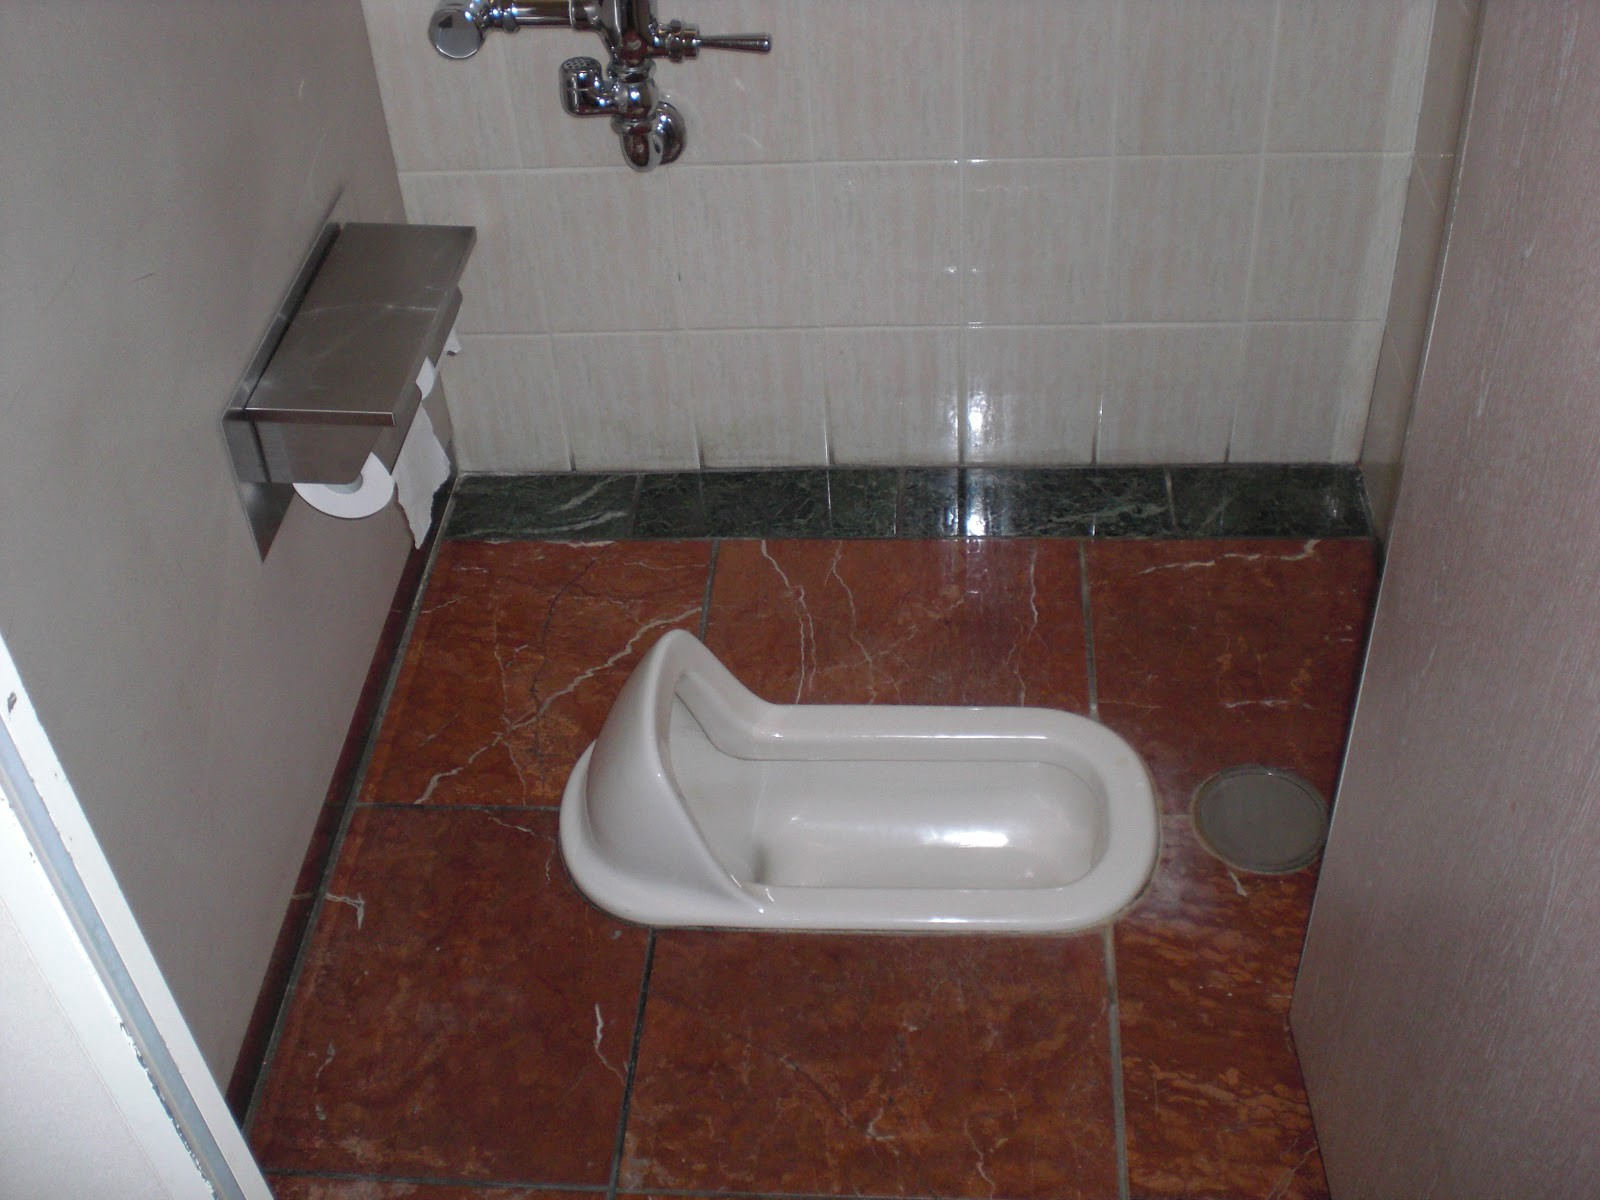 The bathroom crisis in america alexander muse medium for Room with attached bathroom designs